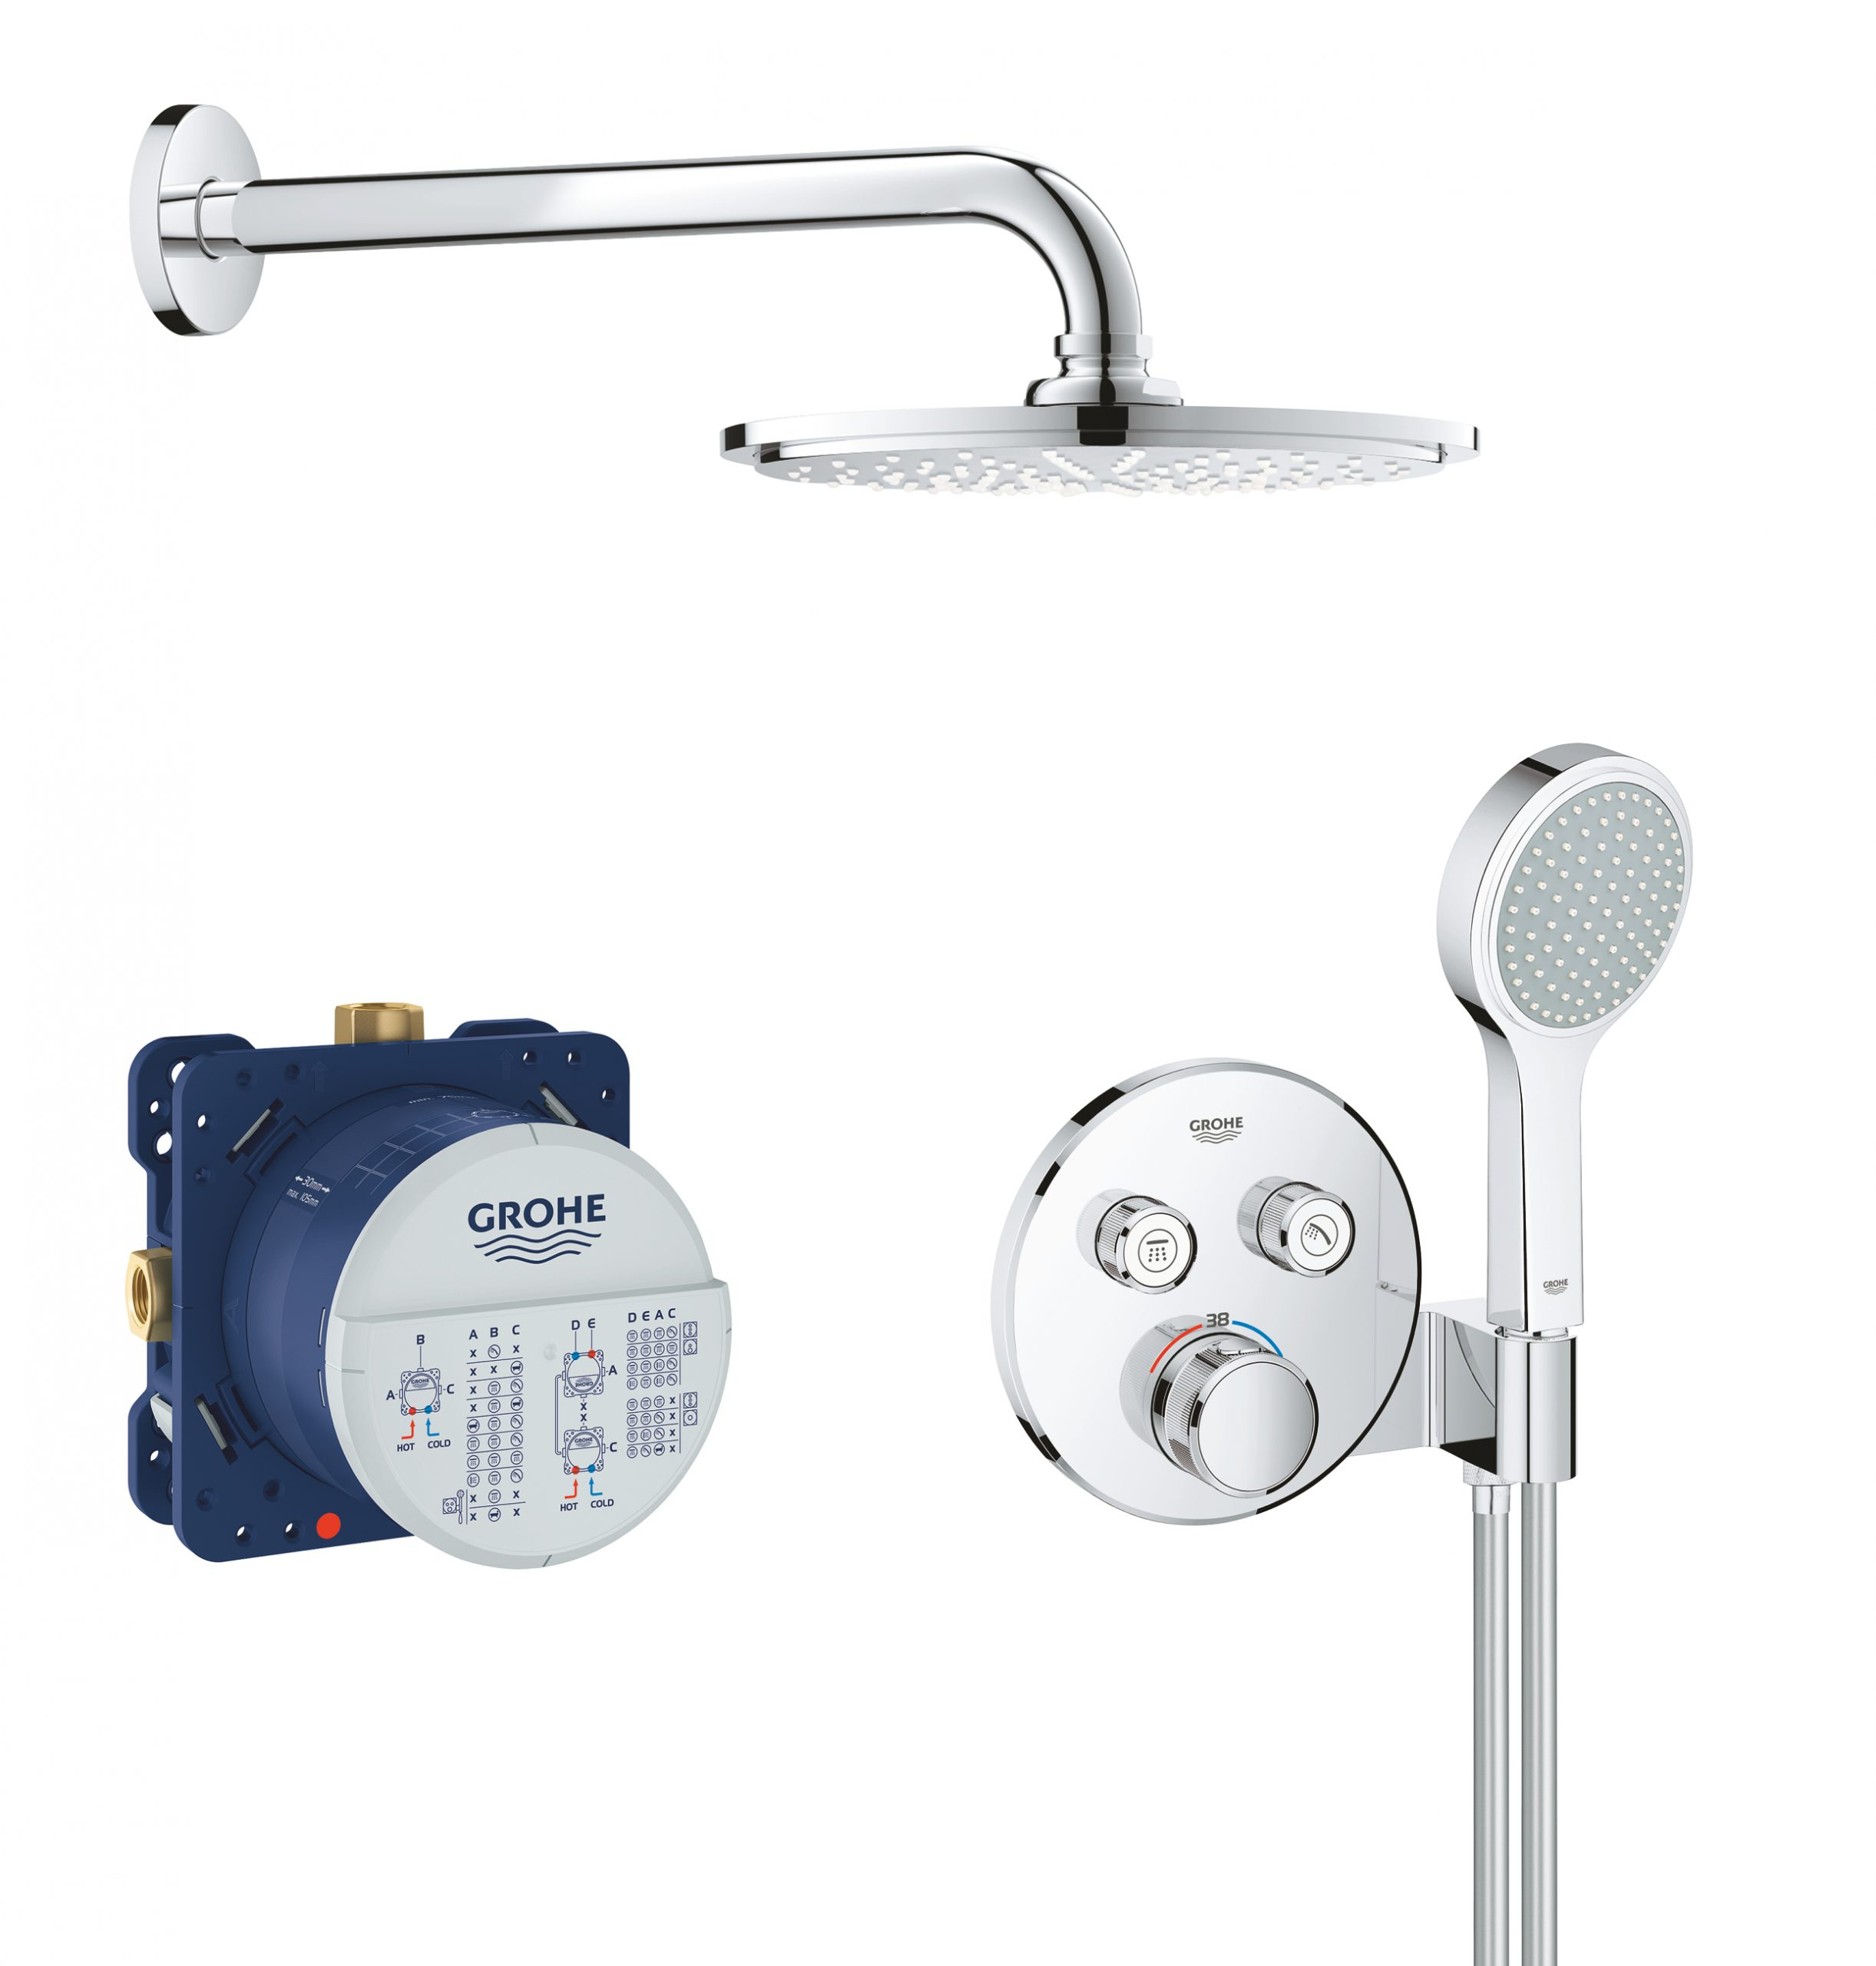 GROHE Grohtherm SmartControl Perfect doucheset rond met QuickFix, chroom